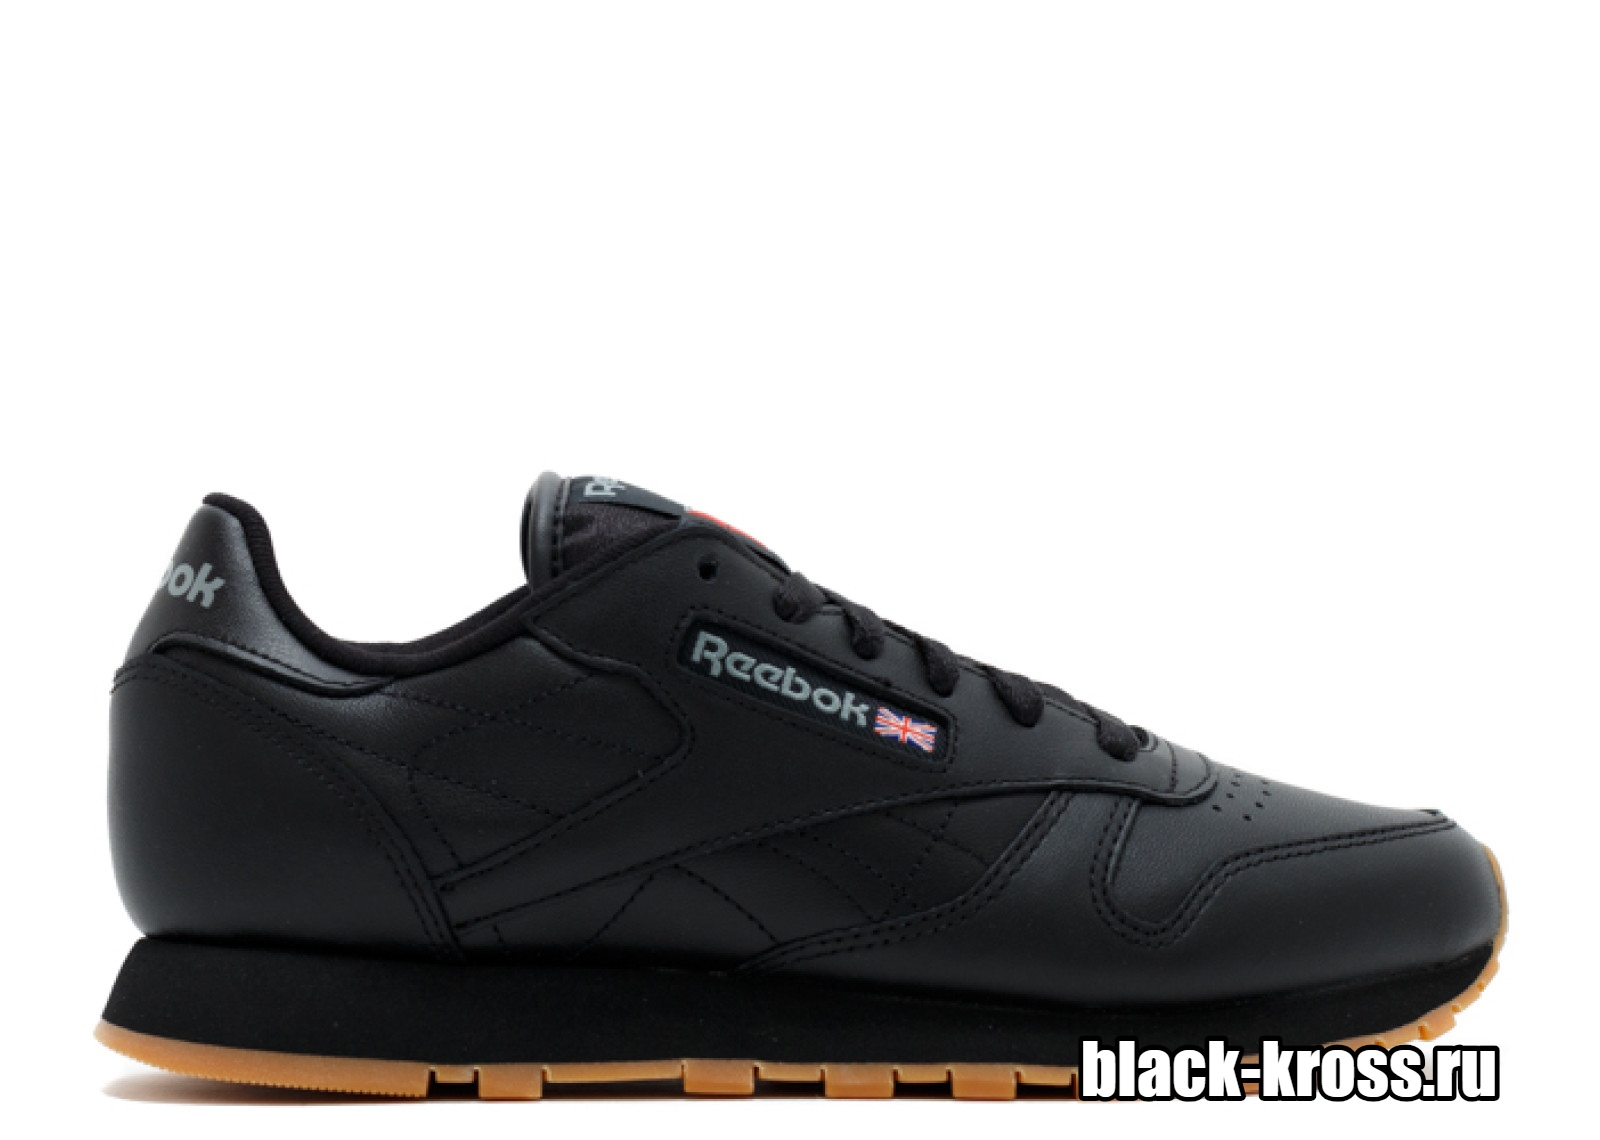 Reebok Classic Leather Black & Gum (41-45)